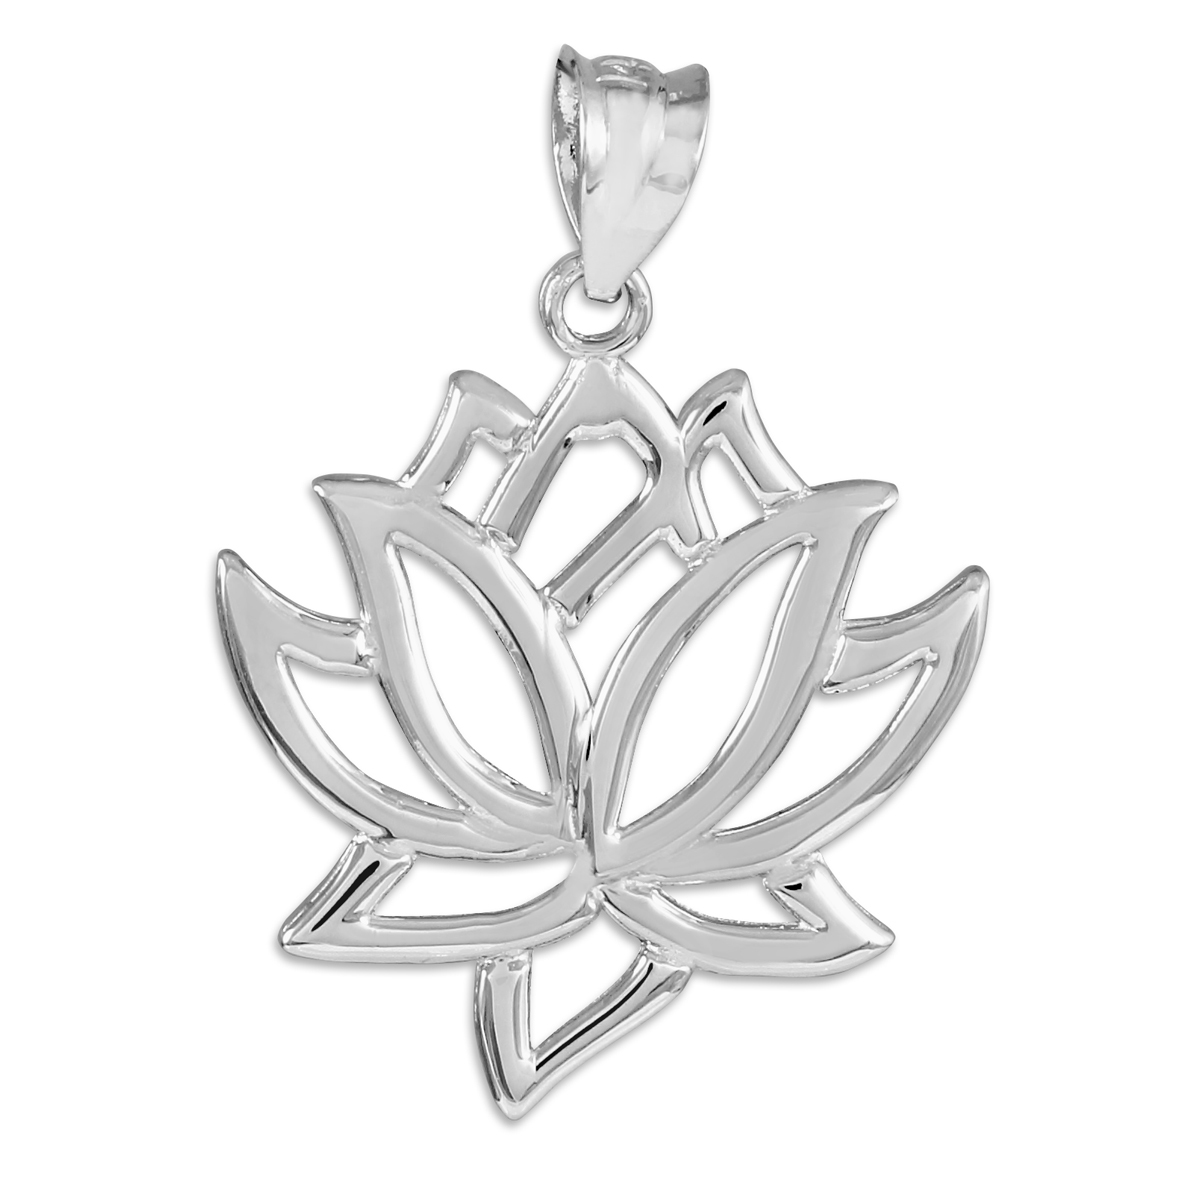 meaning behind the pieces understanding the om, lotus flower, Natural flower